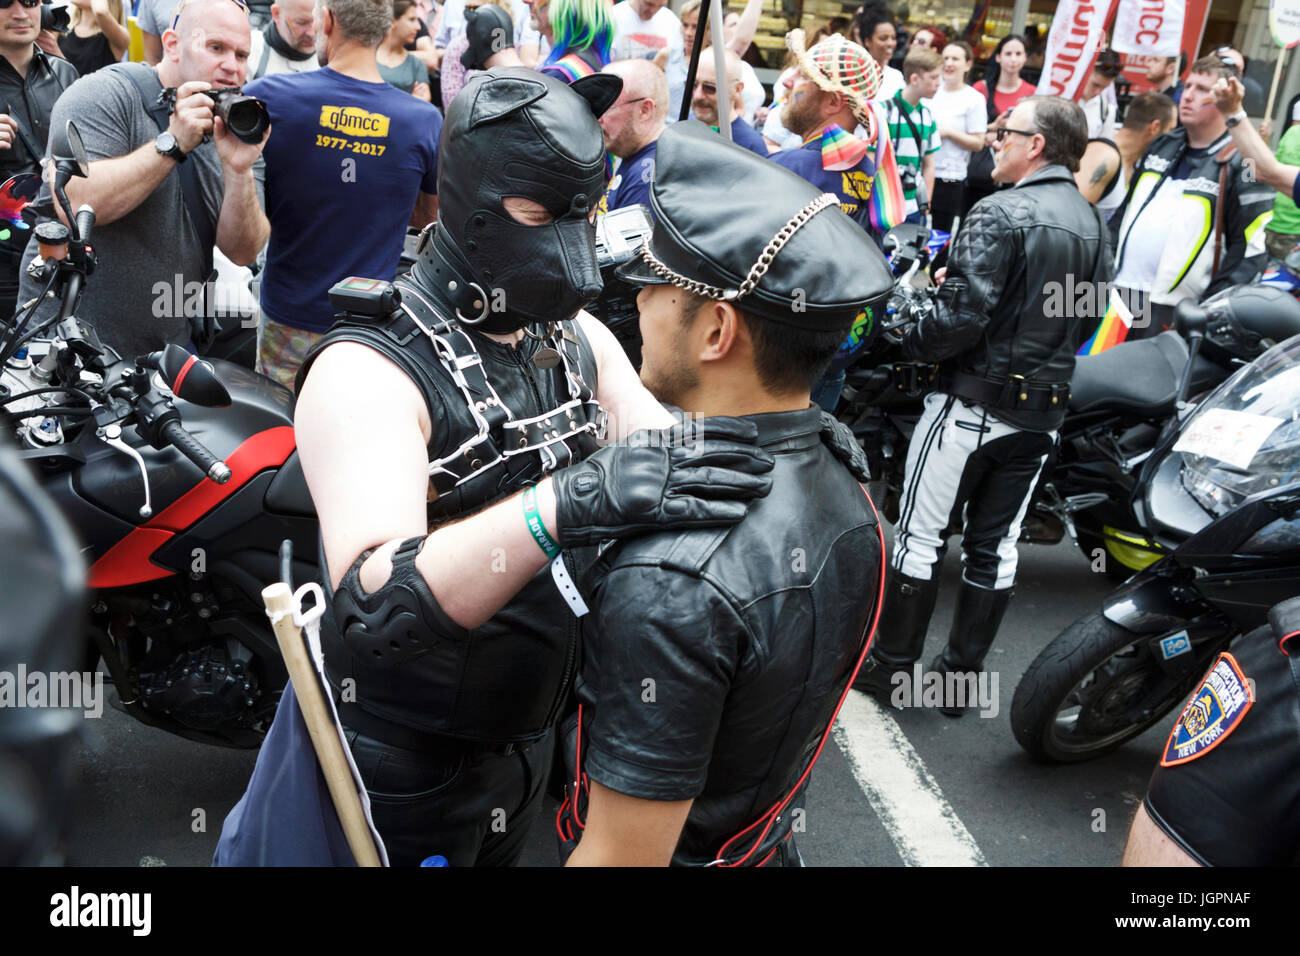 A Soho street scene London. Gay men in leather enjoying the Soho street party atmosphere, after Gay Pride, the annual - Stock Image